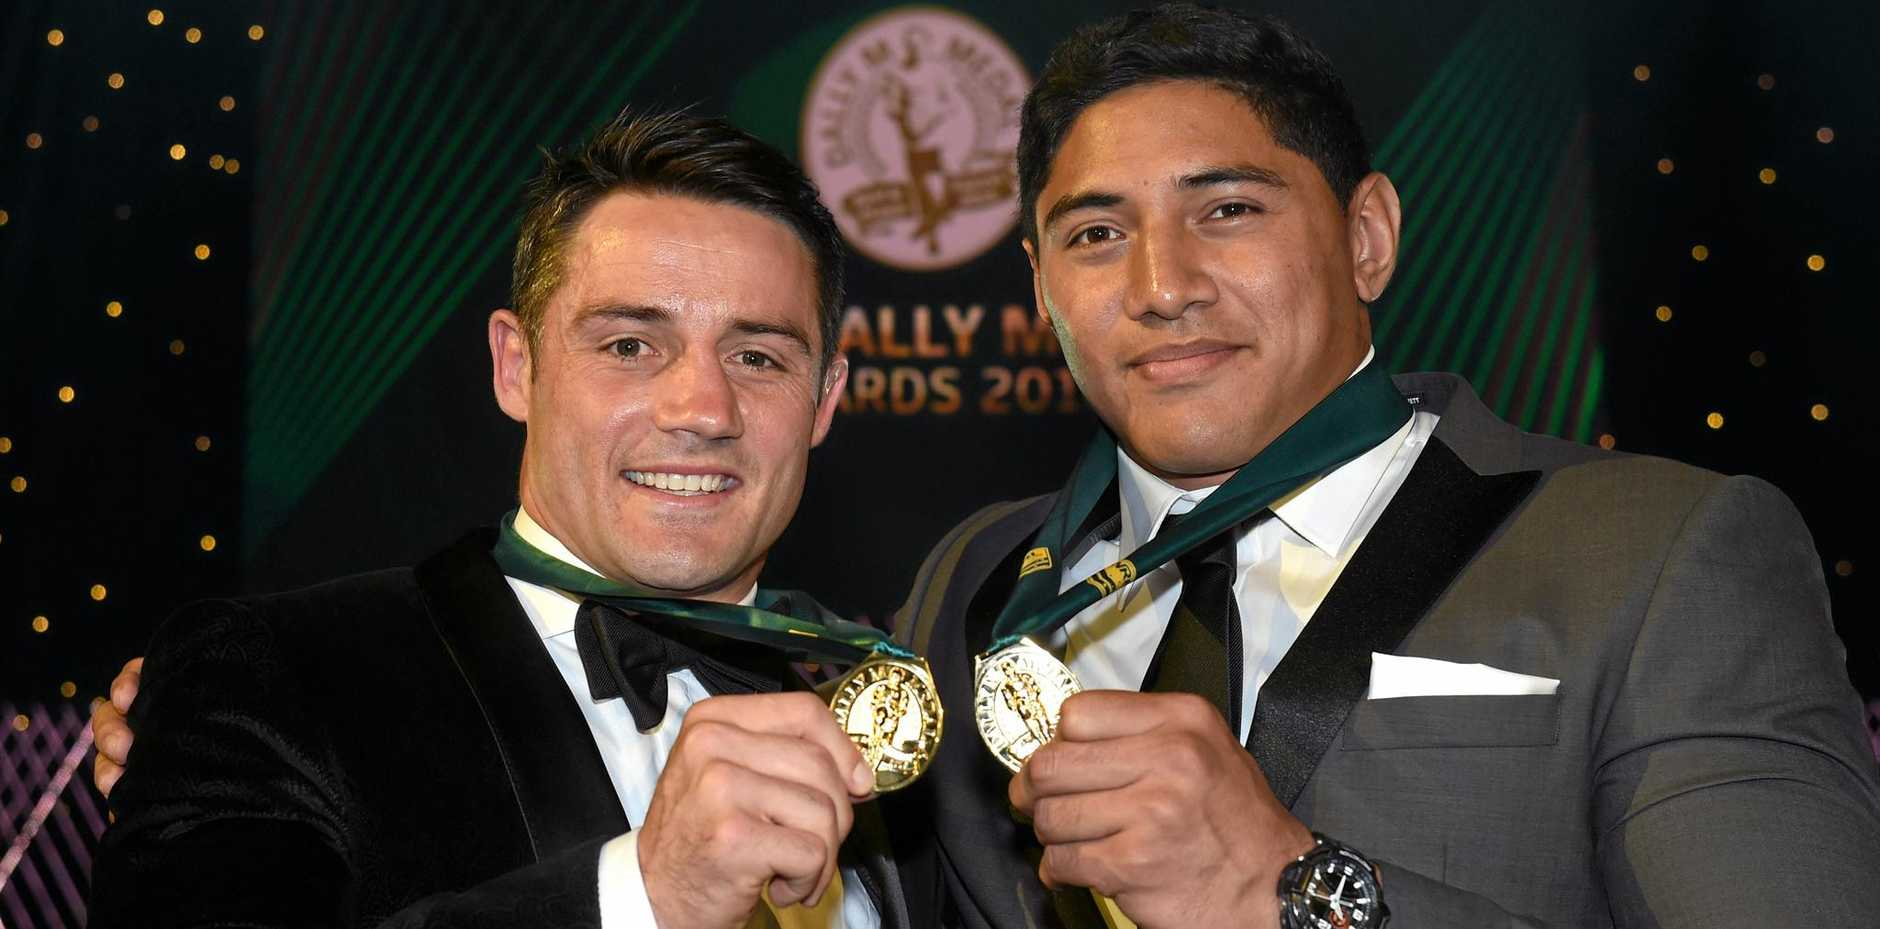 Melbourne's Cooper Cronk and North Queensland's Jason Taumalolo with their Dally M Medals.